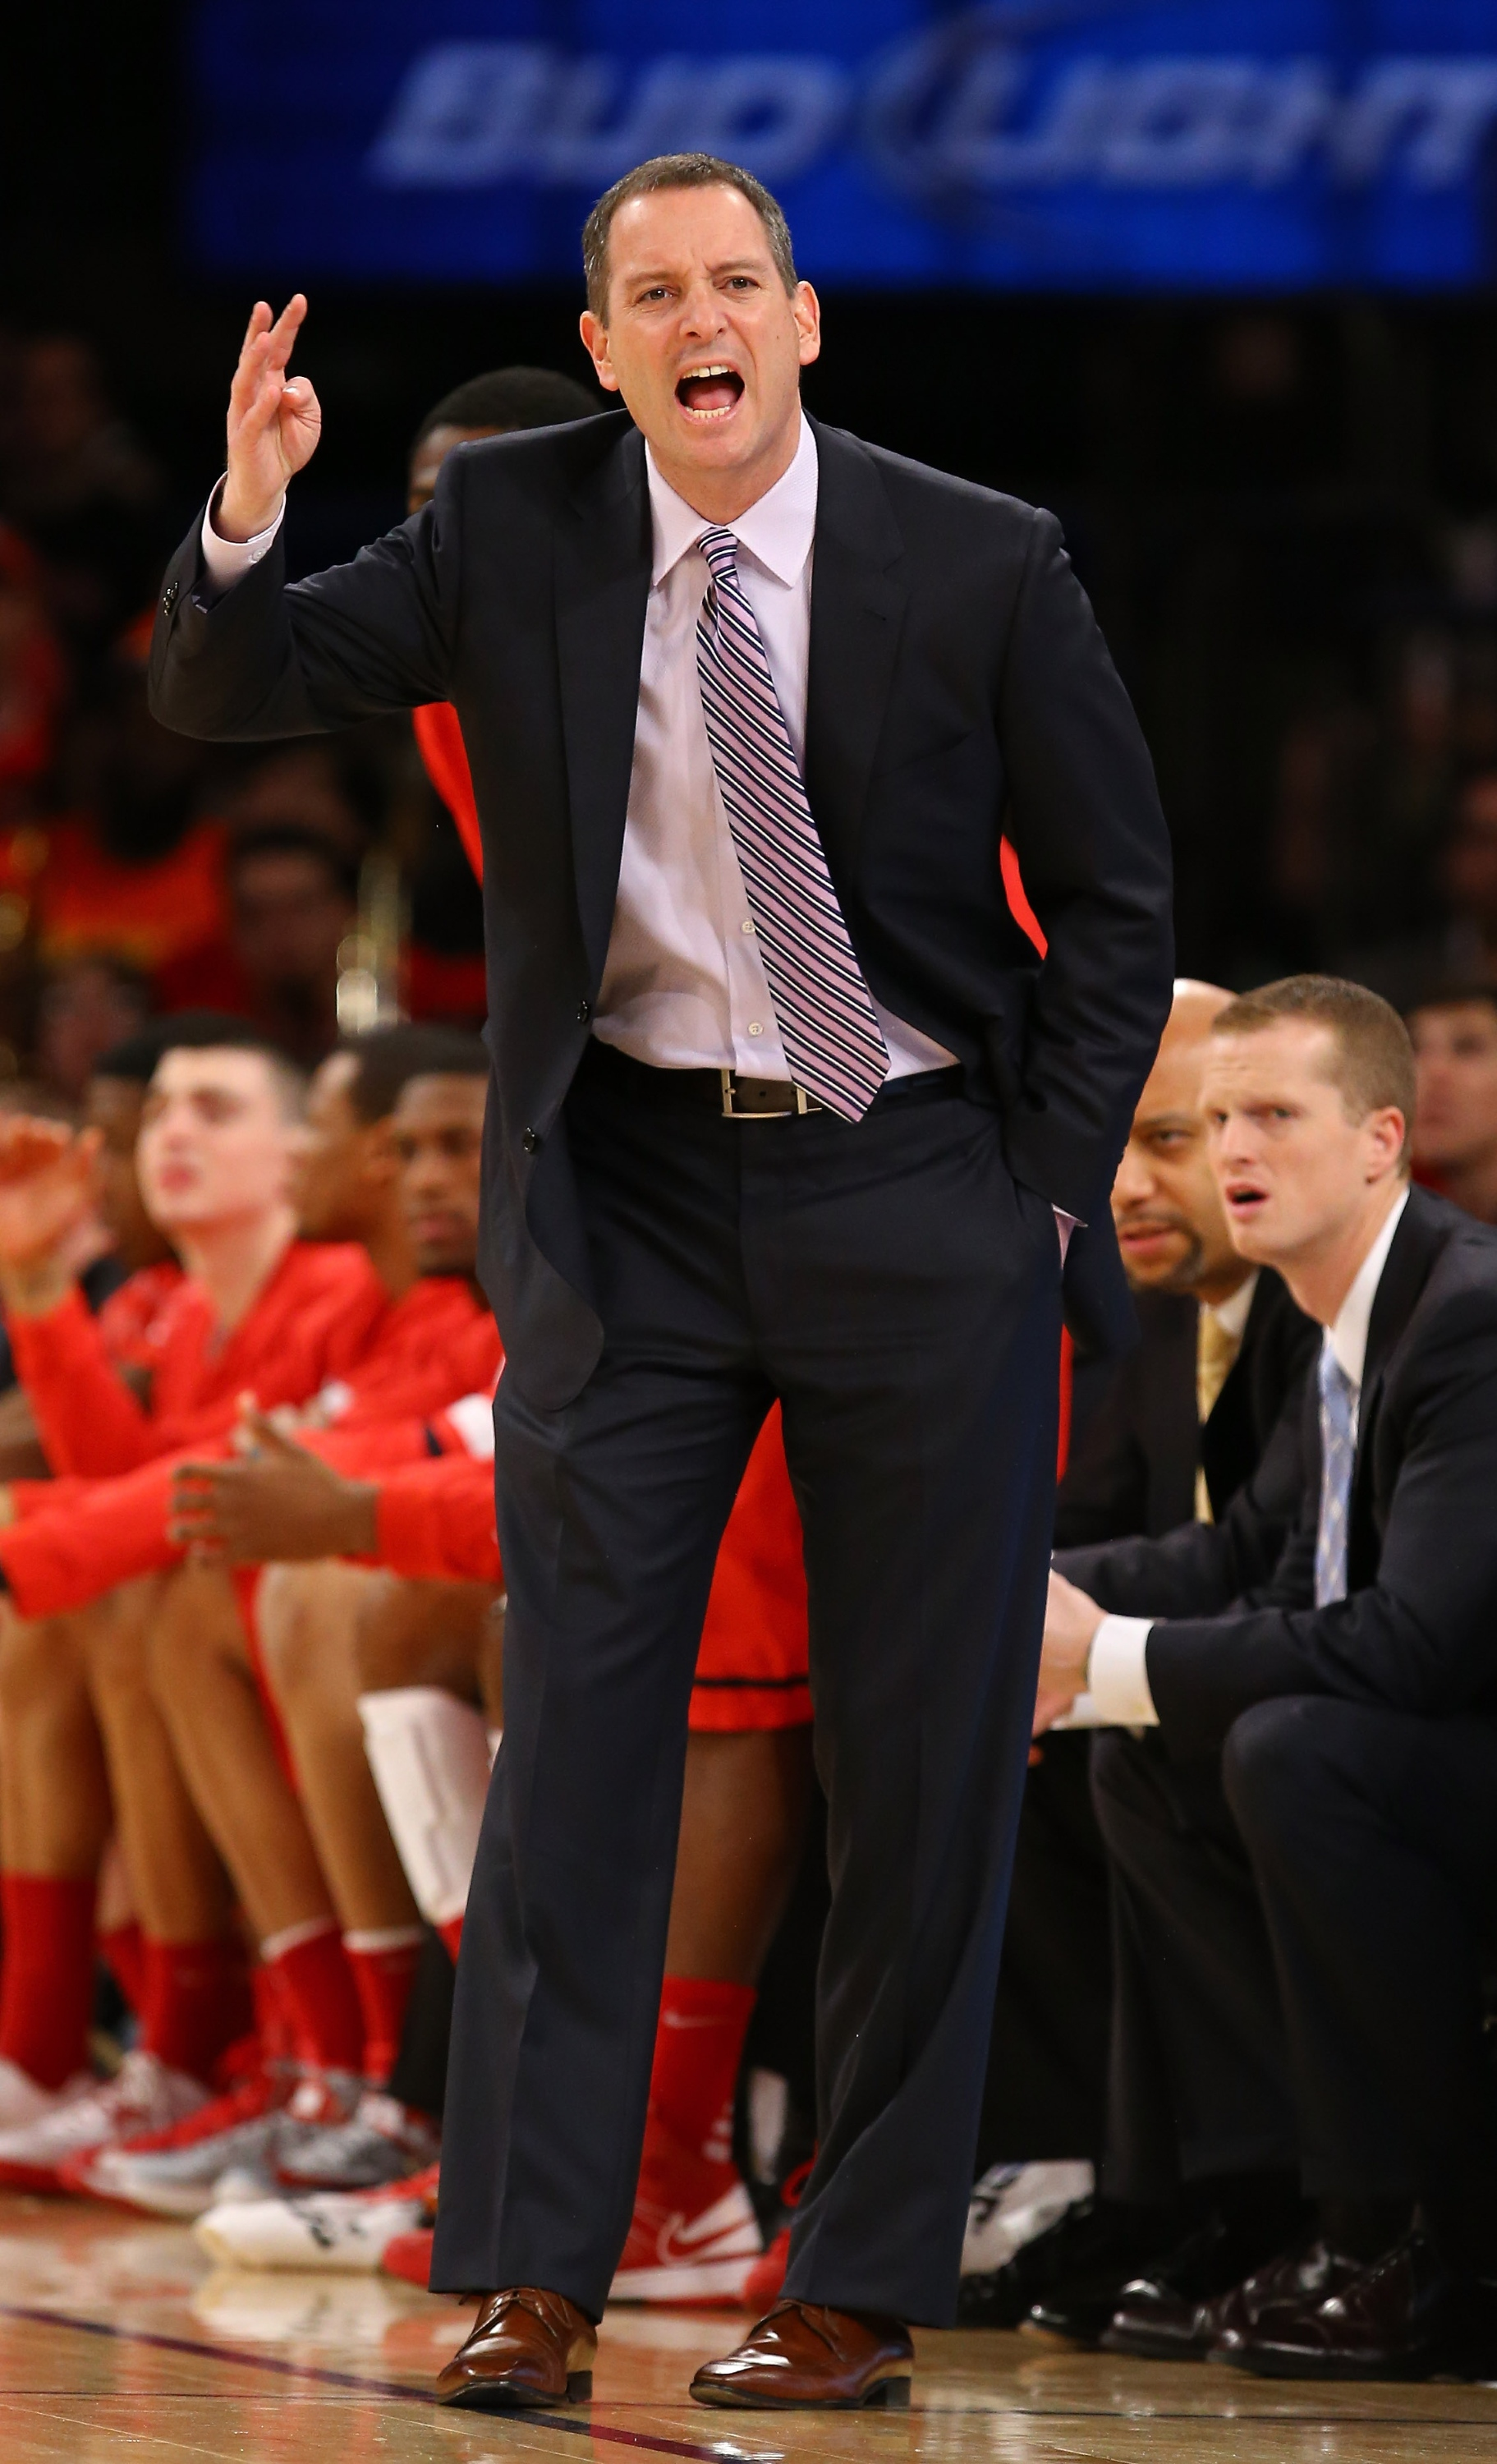 The Scarlet Knights have gone 44-51 under coach Mike Rice. (Getty Images)